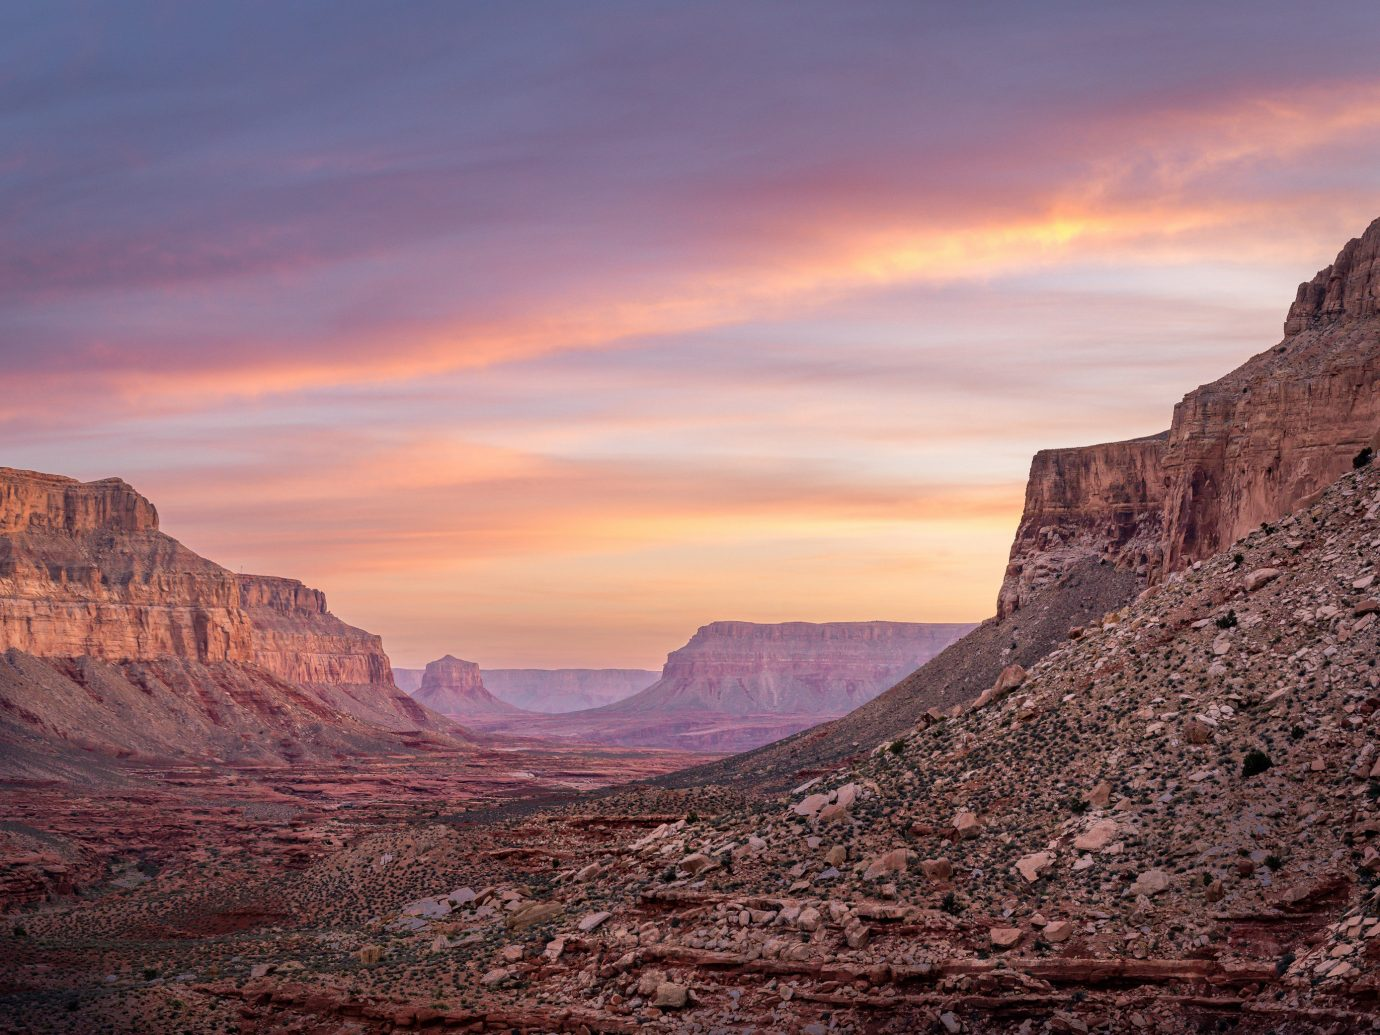 Natural wonders Offbeat Scenic views Trip Ideas valley canyon mountain outdoor sky Nature mountainous landforms geographical feature landform butte natural environment sunrise rock Sunset badlands landscape Desert dawn wadi plateau cliff dusk geology terrain formation lone dry hillside